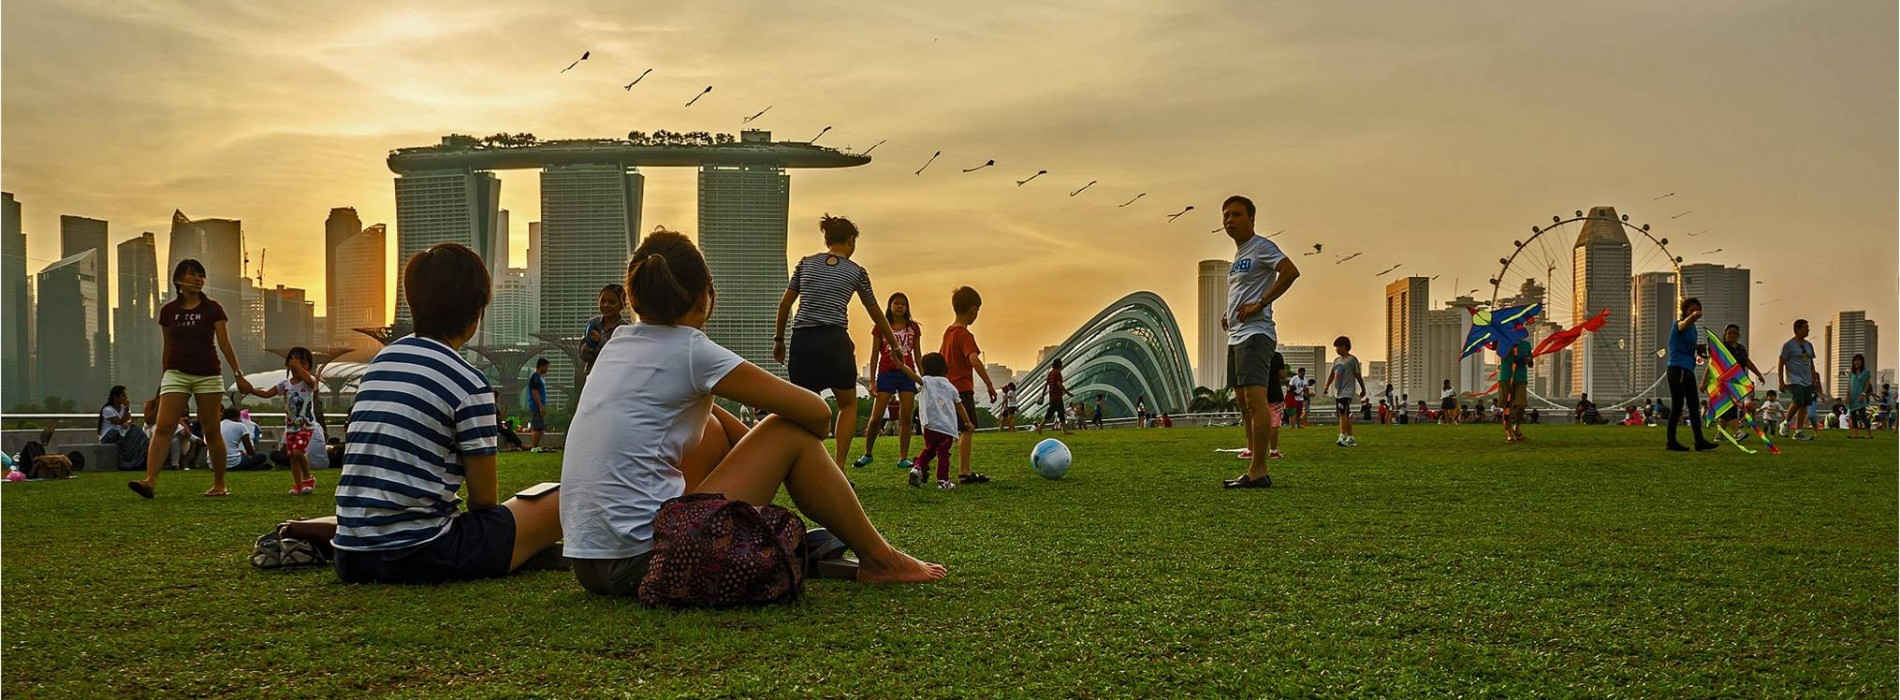 India records the highest growth rate in visitor arrivals for Singapore in 2017